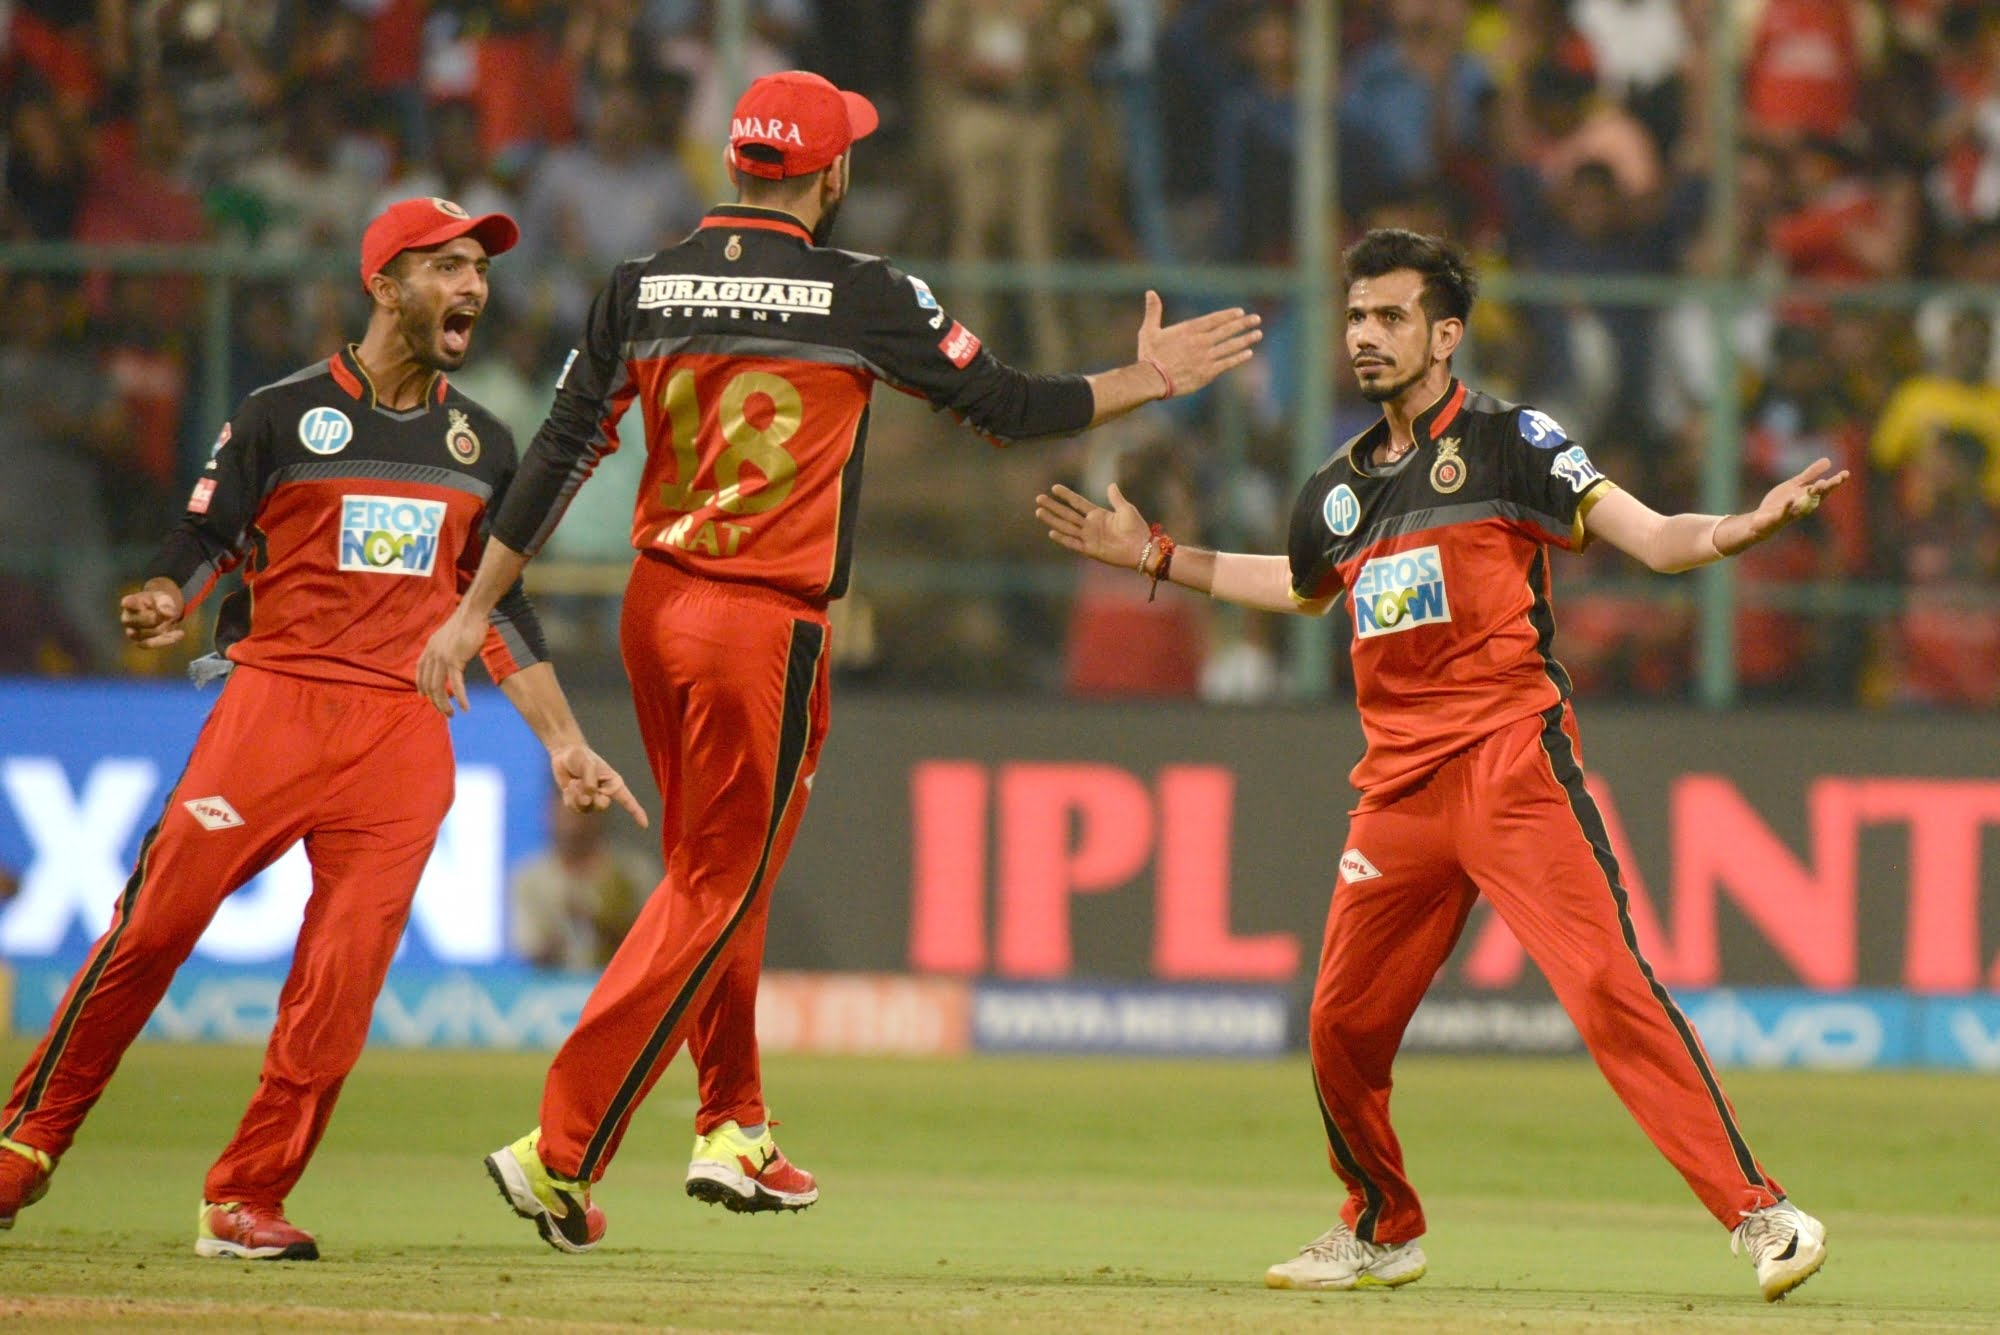 IPL 2018: Match 29 (RCB vs KKR) - Five Things to Look Out for